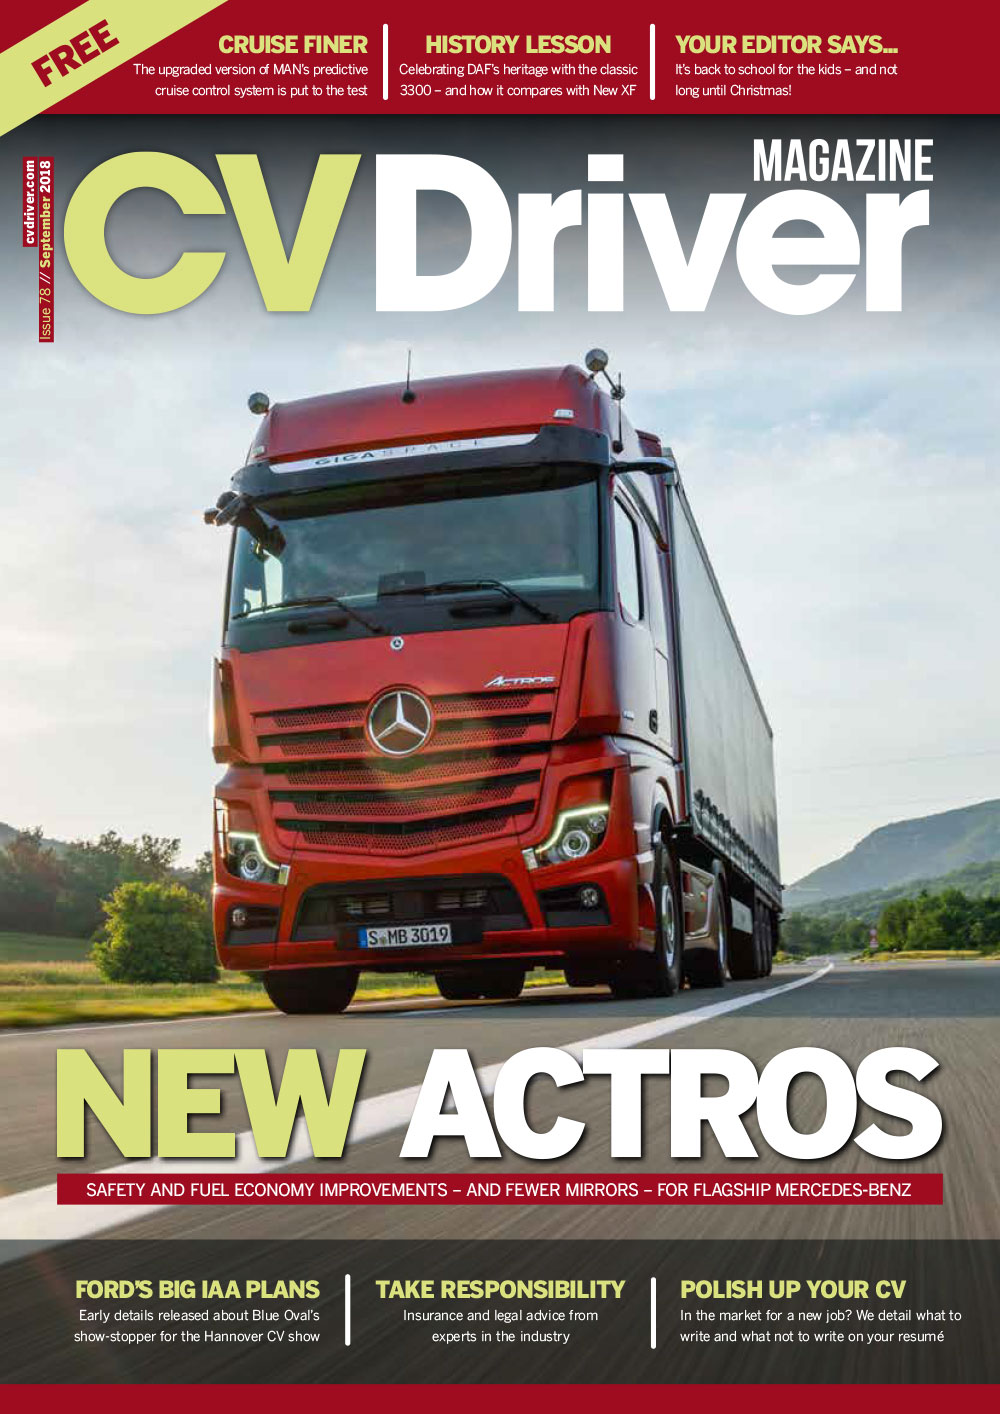 CV Driver September 2018 Issue 78